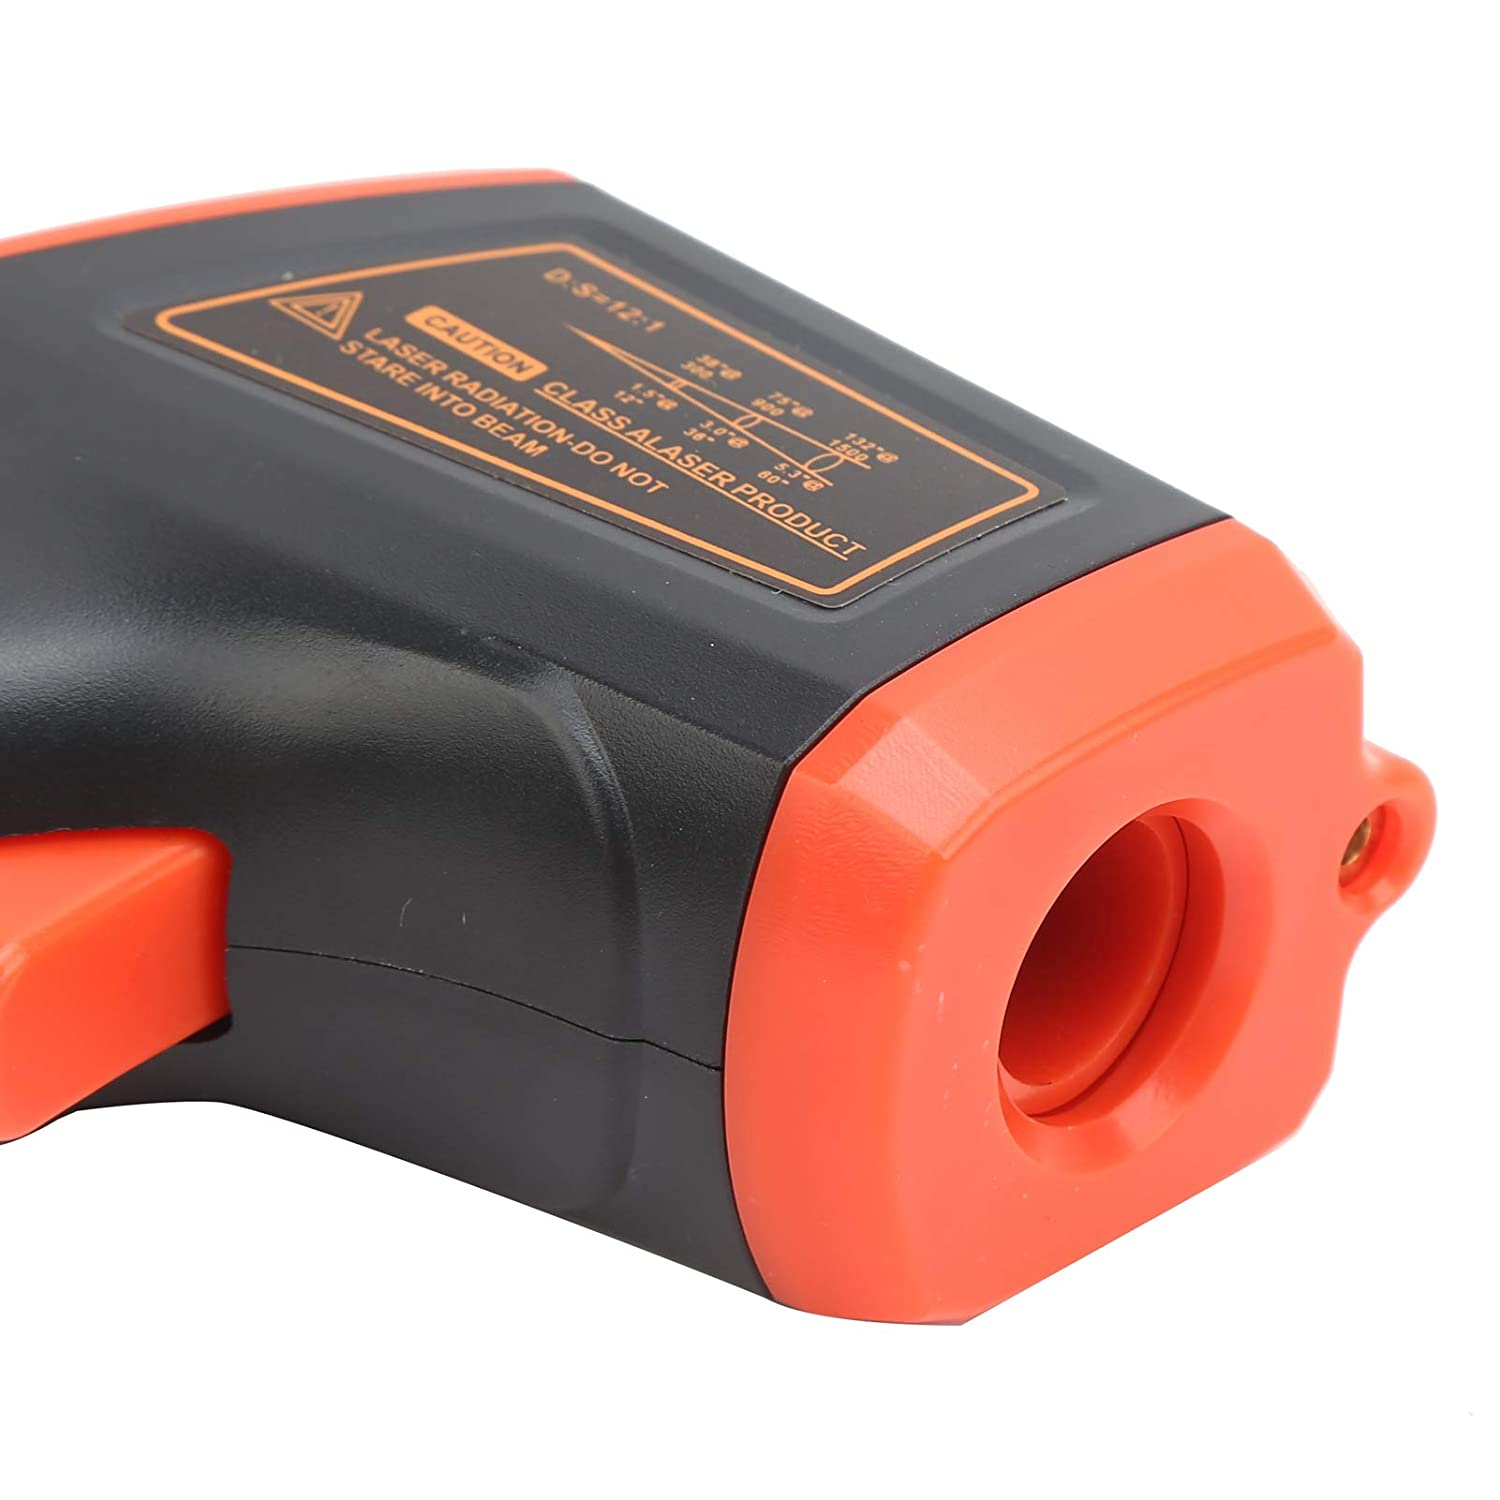 Infrared Industrial Handheld Easy to Measuring Hold Al Financial sales sale sold out. Temperature